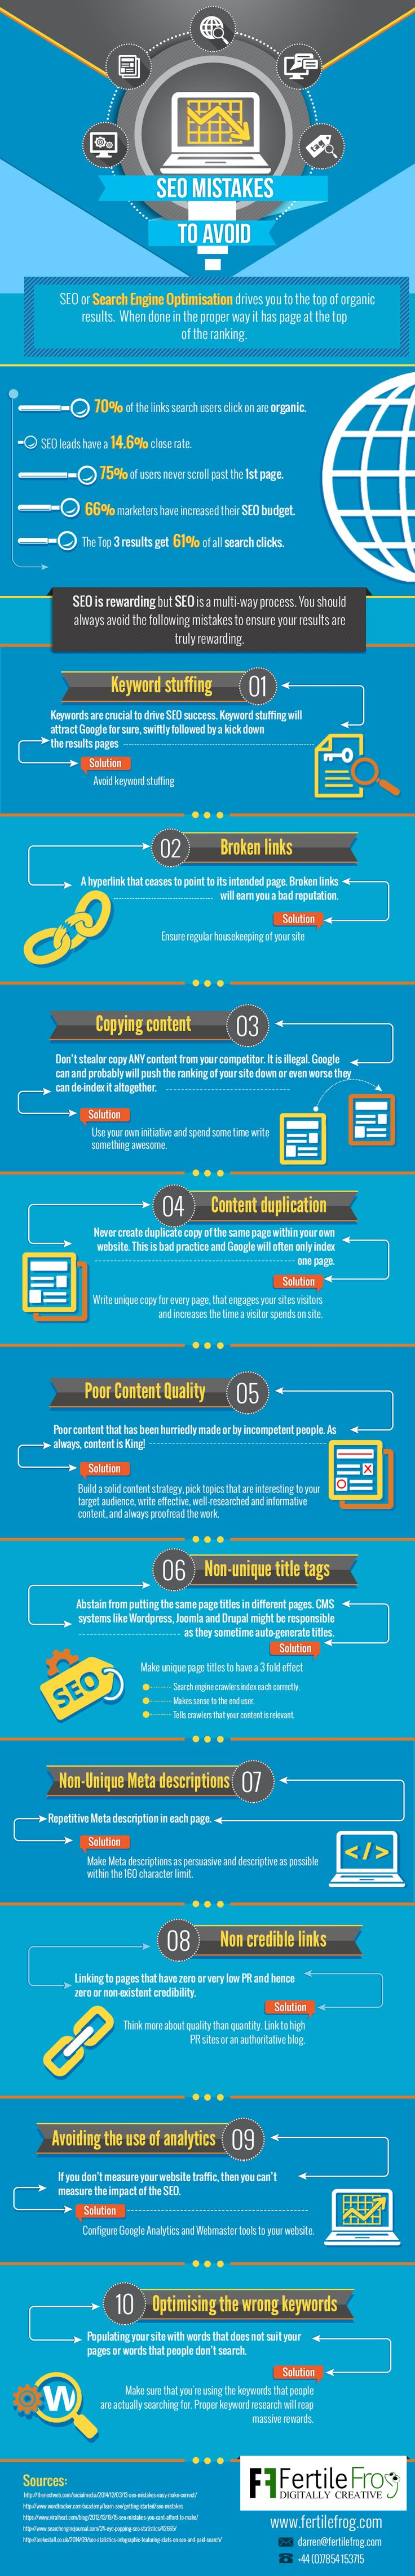 A great #infographic on #seo mistakes to avoid